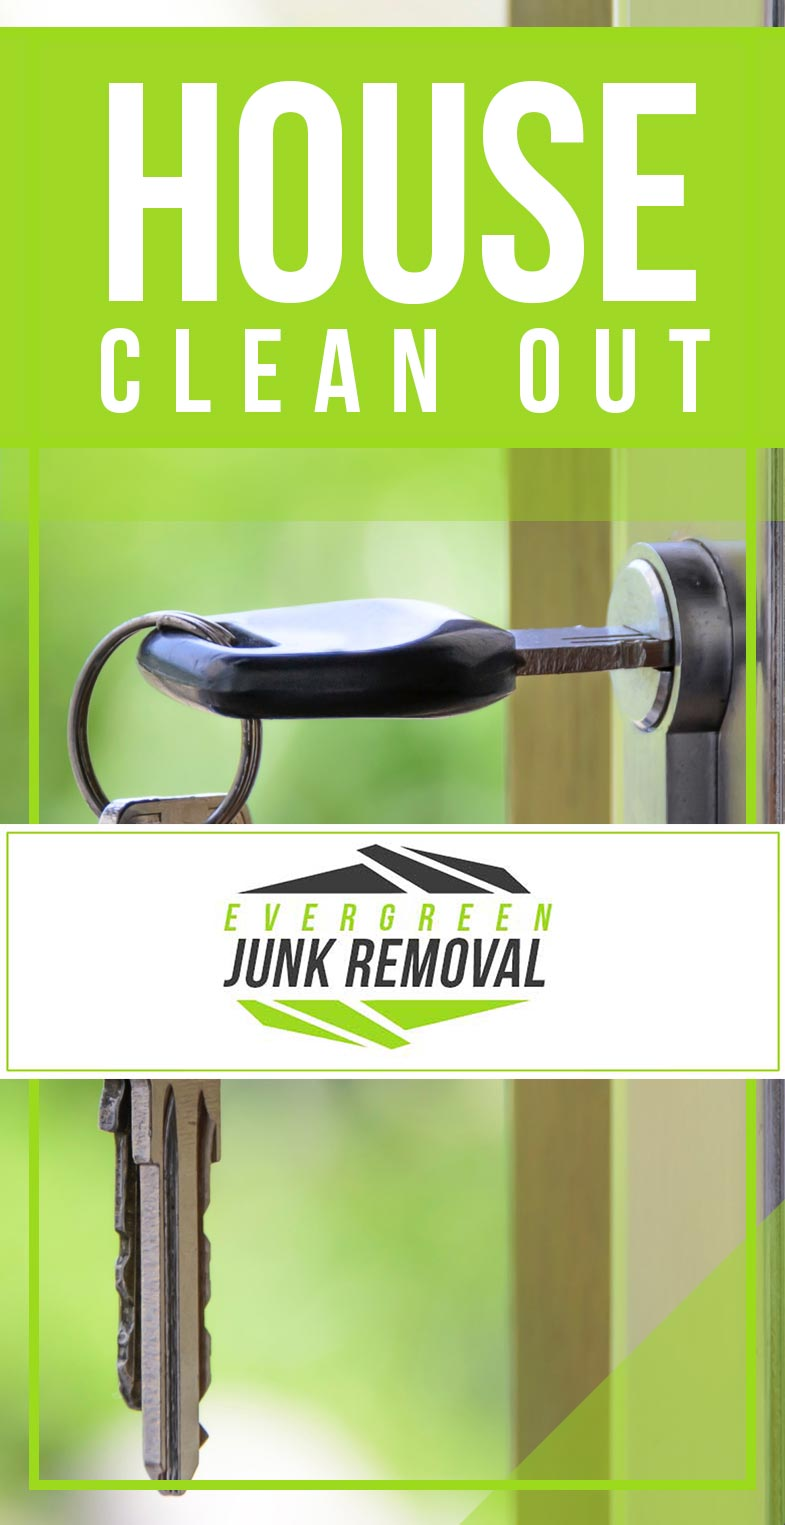 Junk Removal Palm Beach House Clean Out